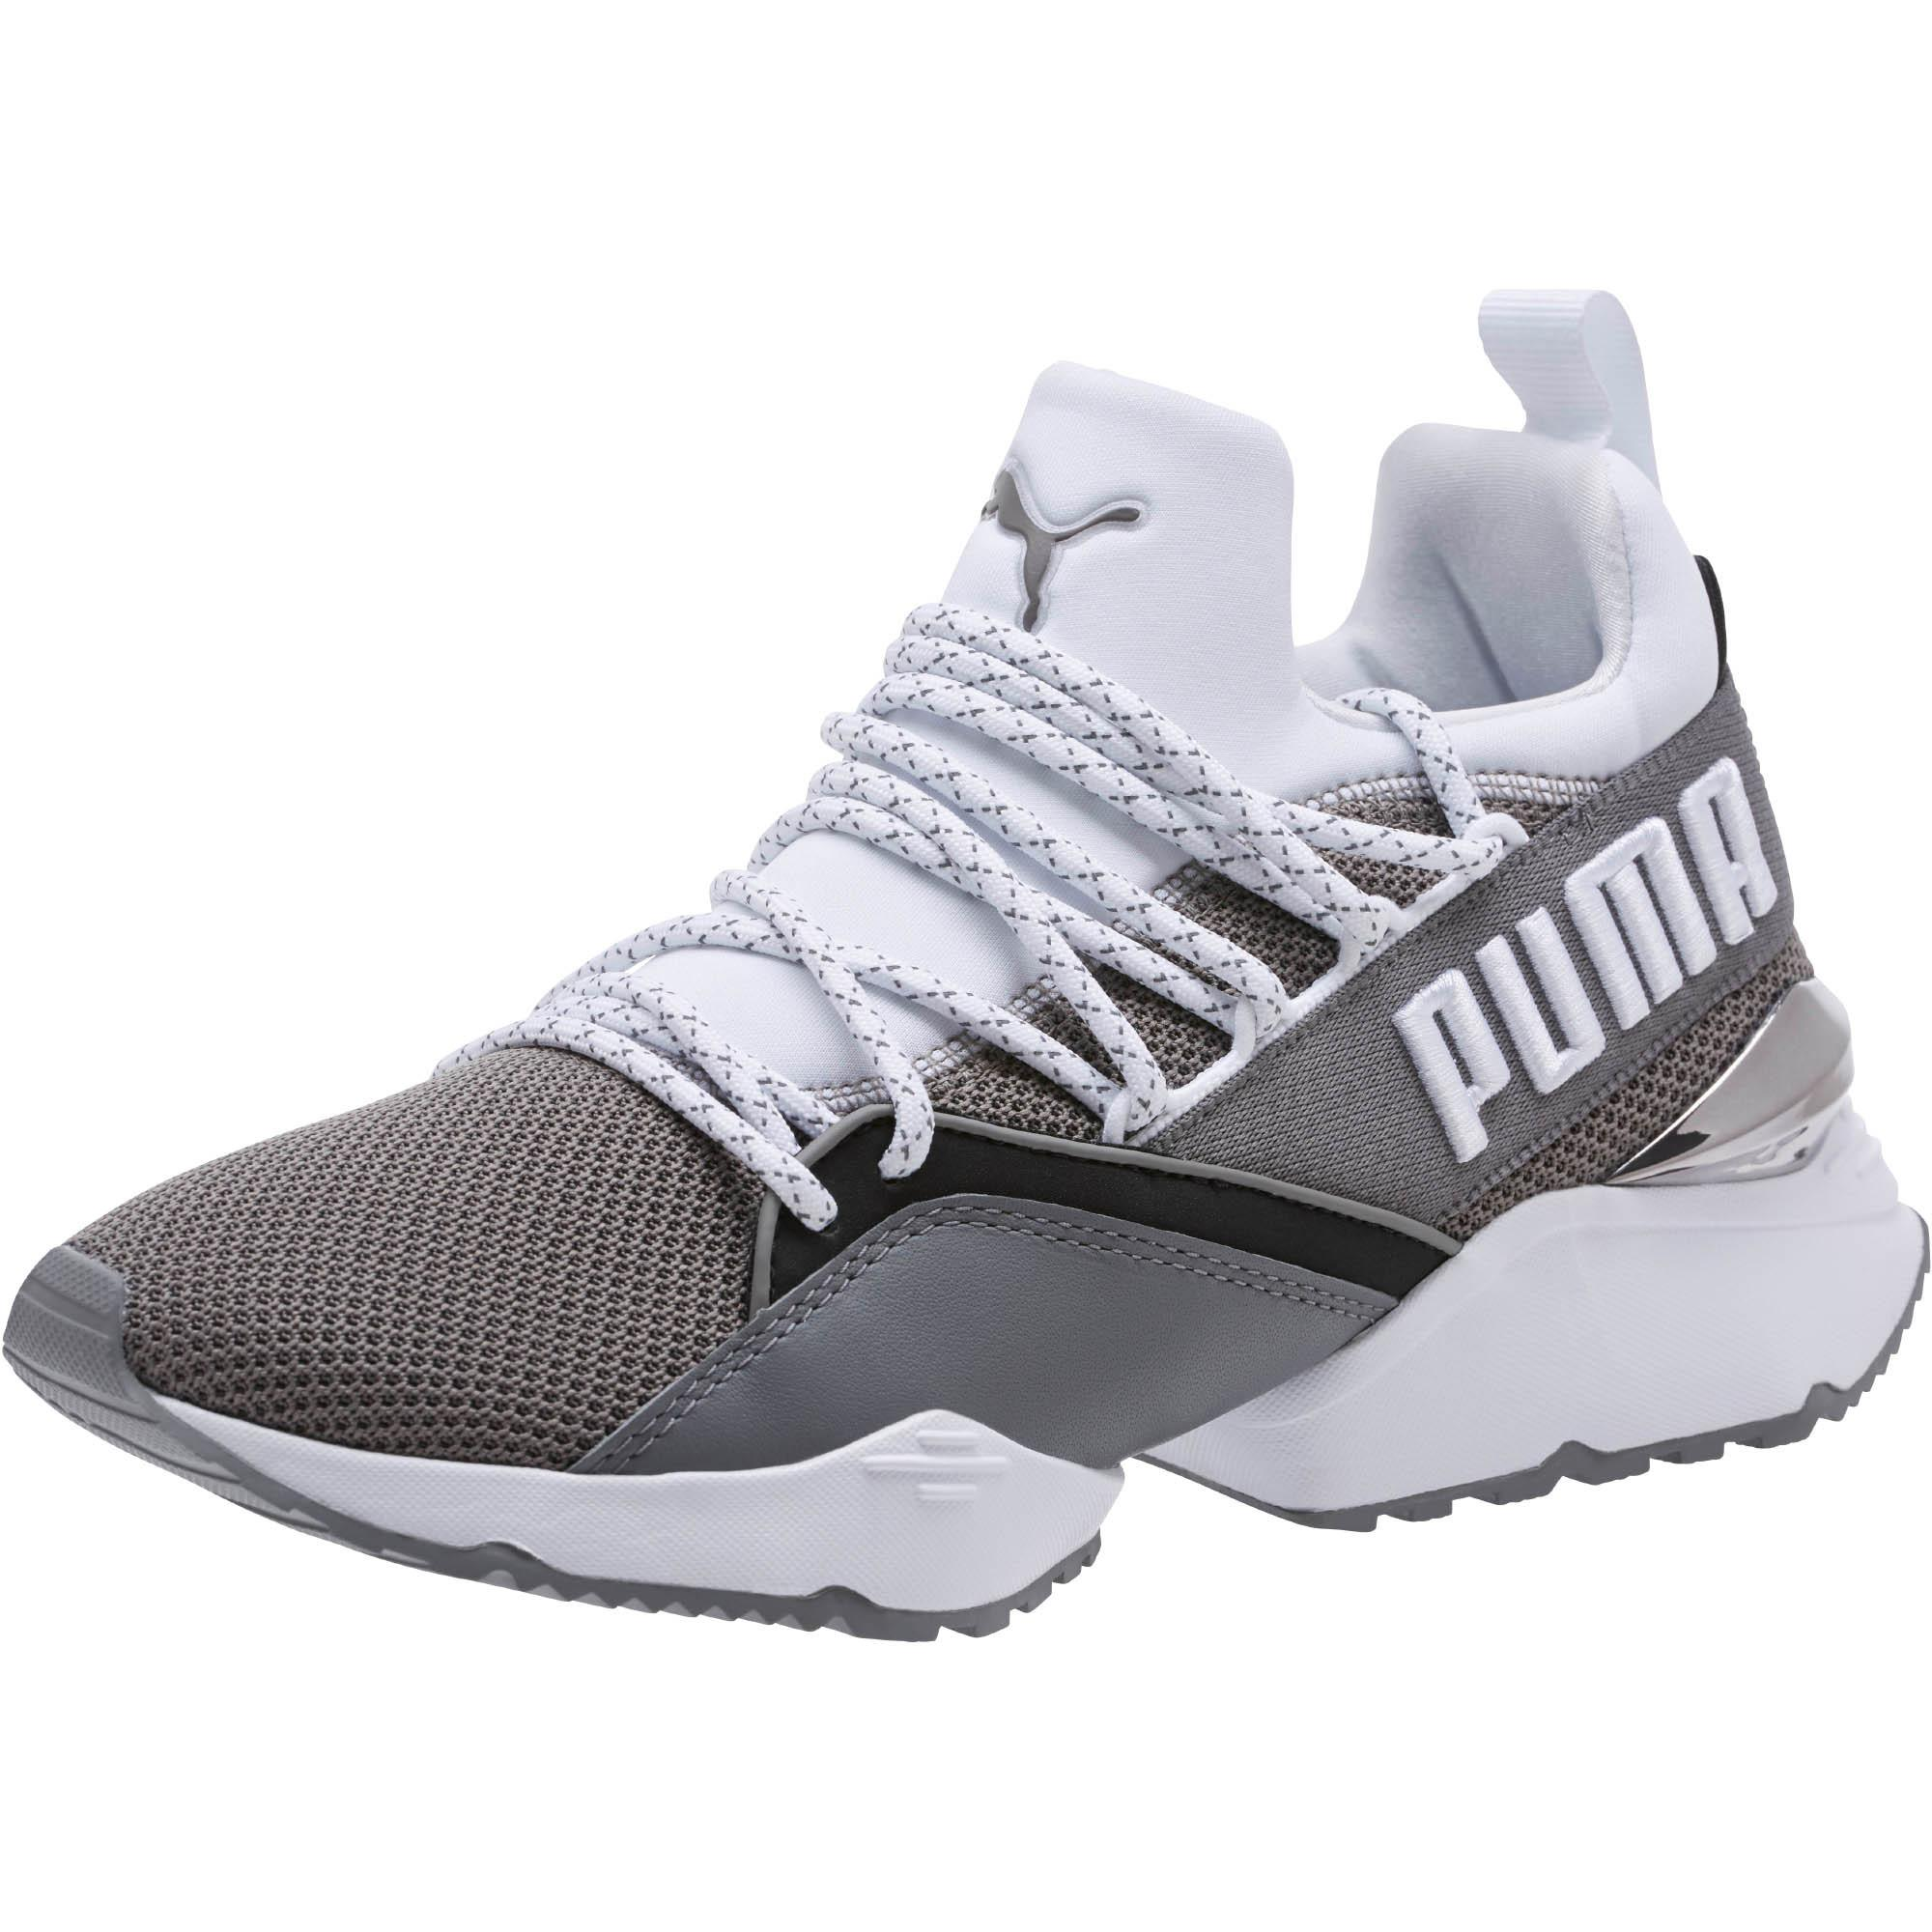 ff735bfb4f2 Lyst - PUMA Muse Maia Smet Women s Sneakers in Gray